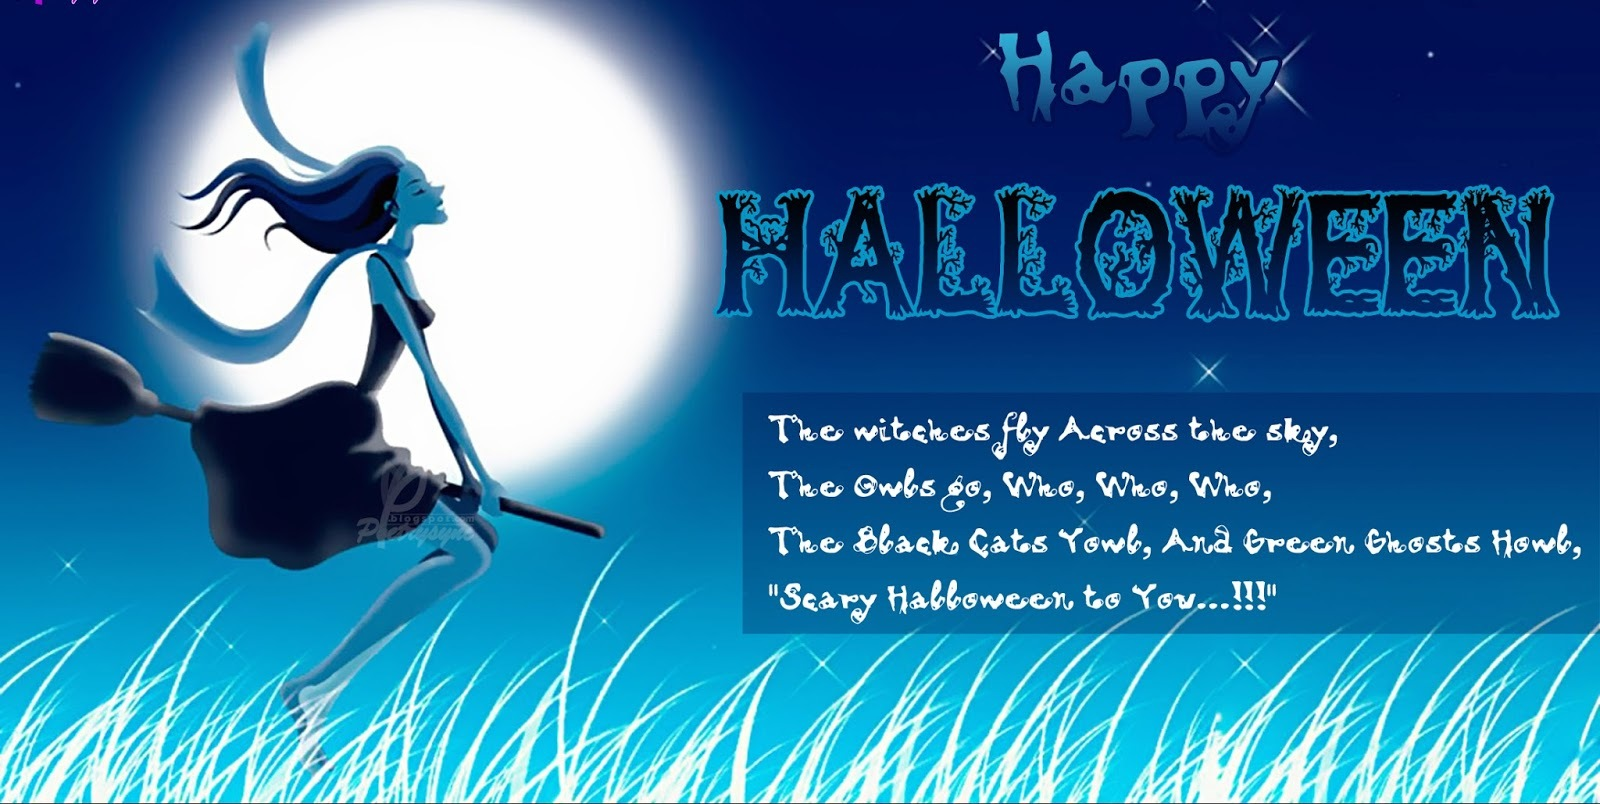 Halloween day wallpapers happy halloween day hd images wallpapers happy halloween day hd images wallpapers greetings cards 2016 m4hsunfo